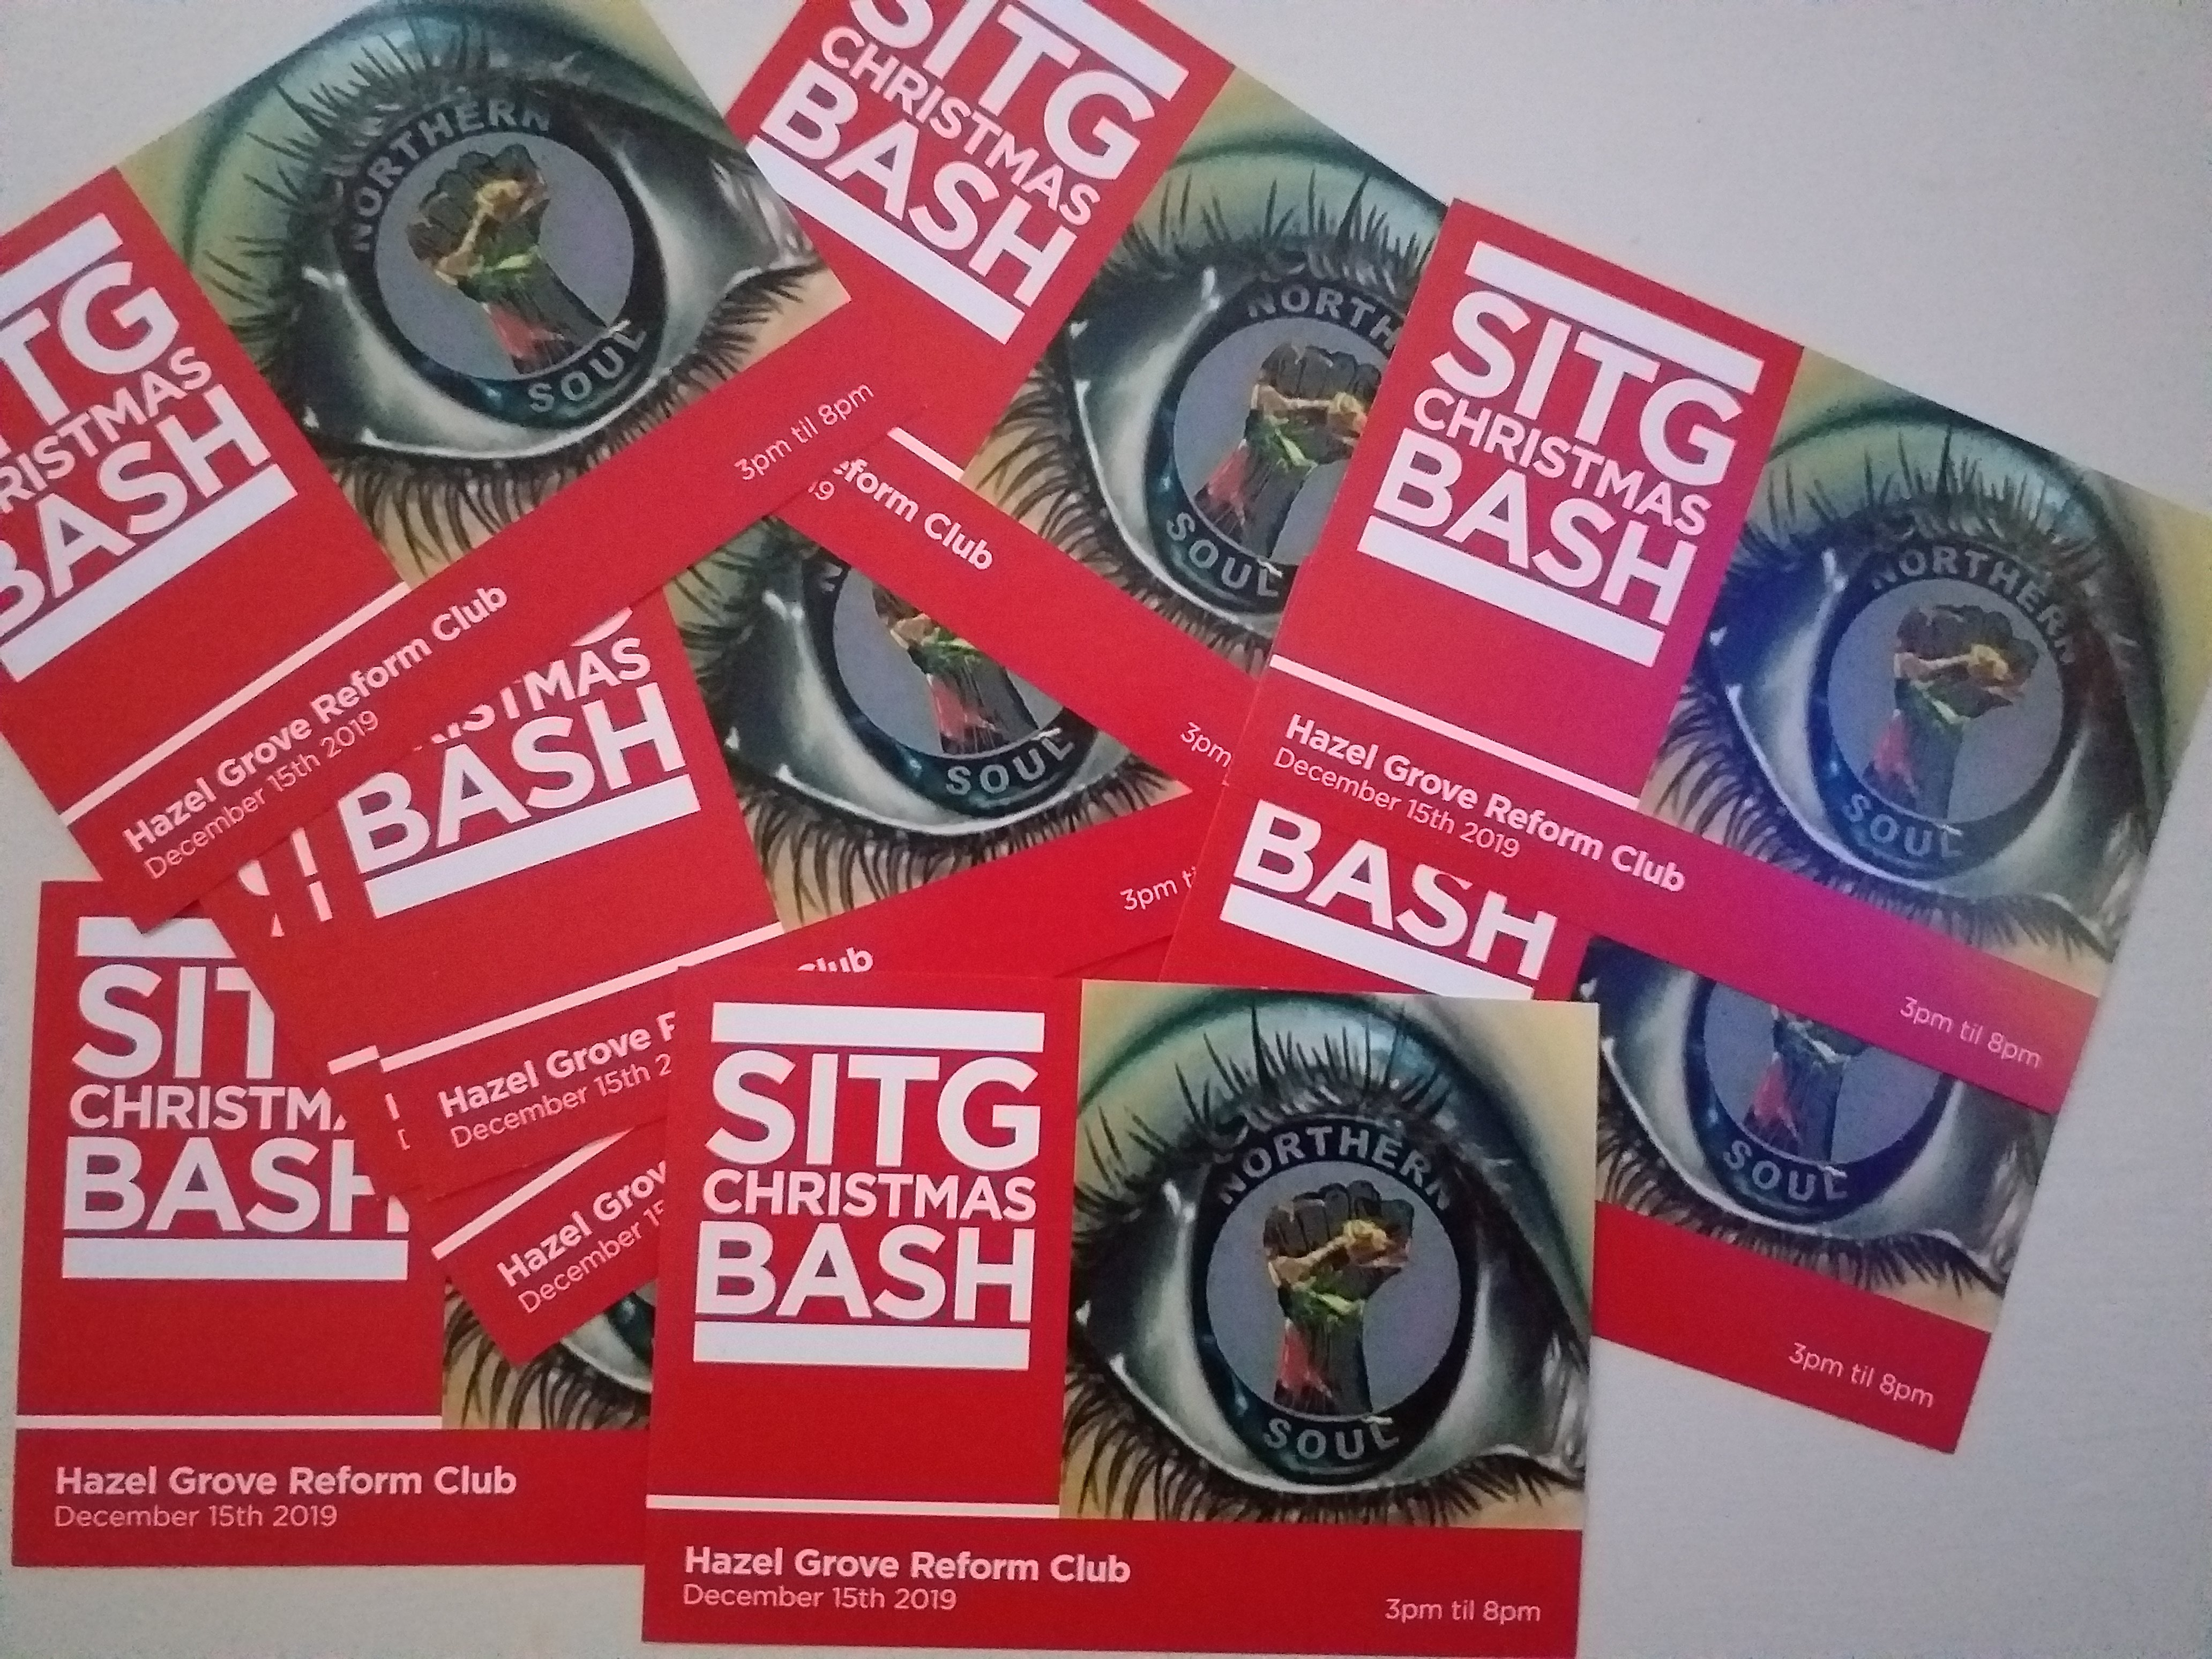 Sitg Christmas Bash  Sold Out flyer